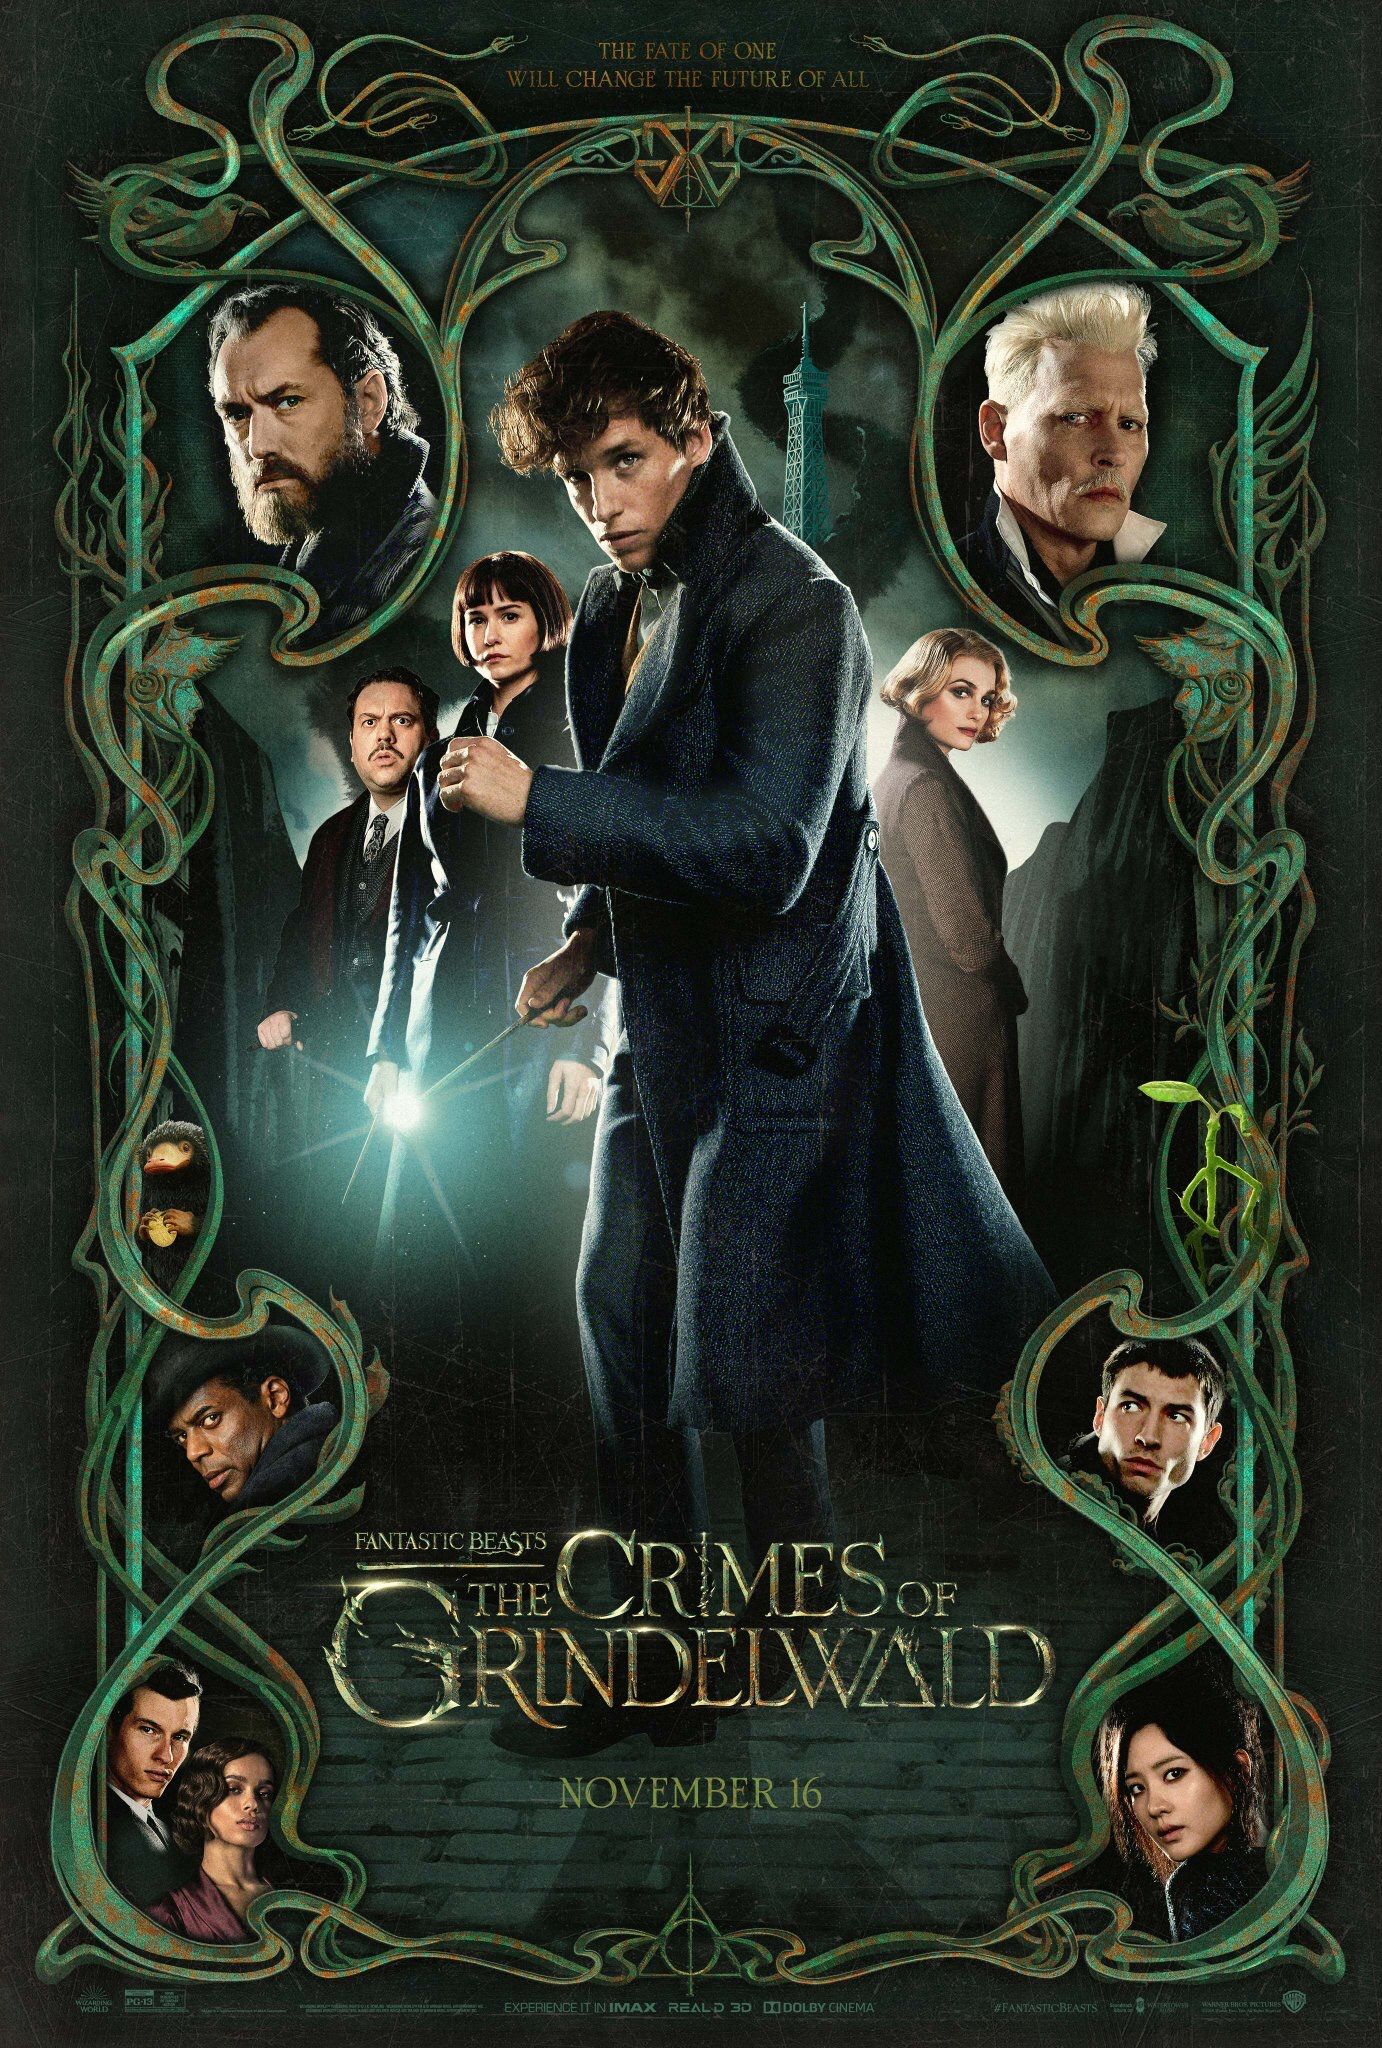 Les Crimes De Grindelwald Streaming : crimes, grindelwald, streaming, Excited!!?, Also,, Aren't, Queenie, Jacob, Fantastic, Beasts,, Fantasic, Beasts, Movie